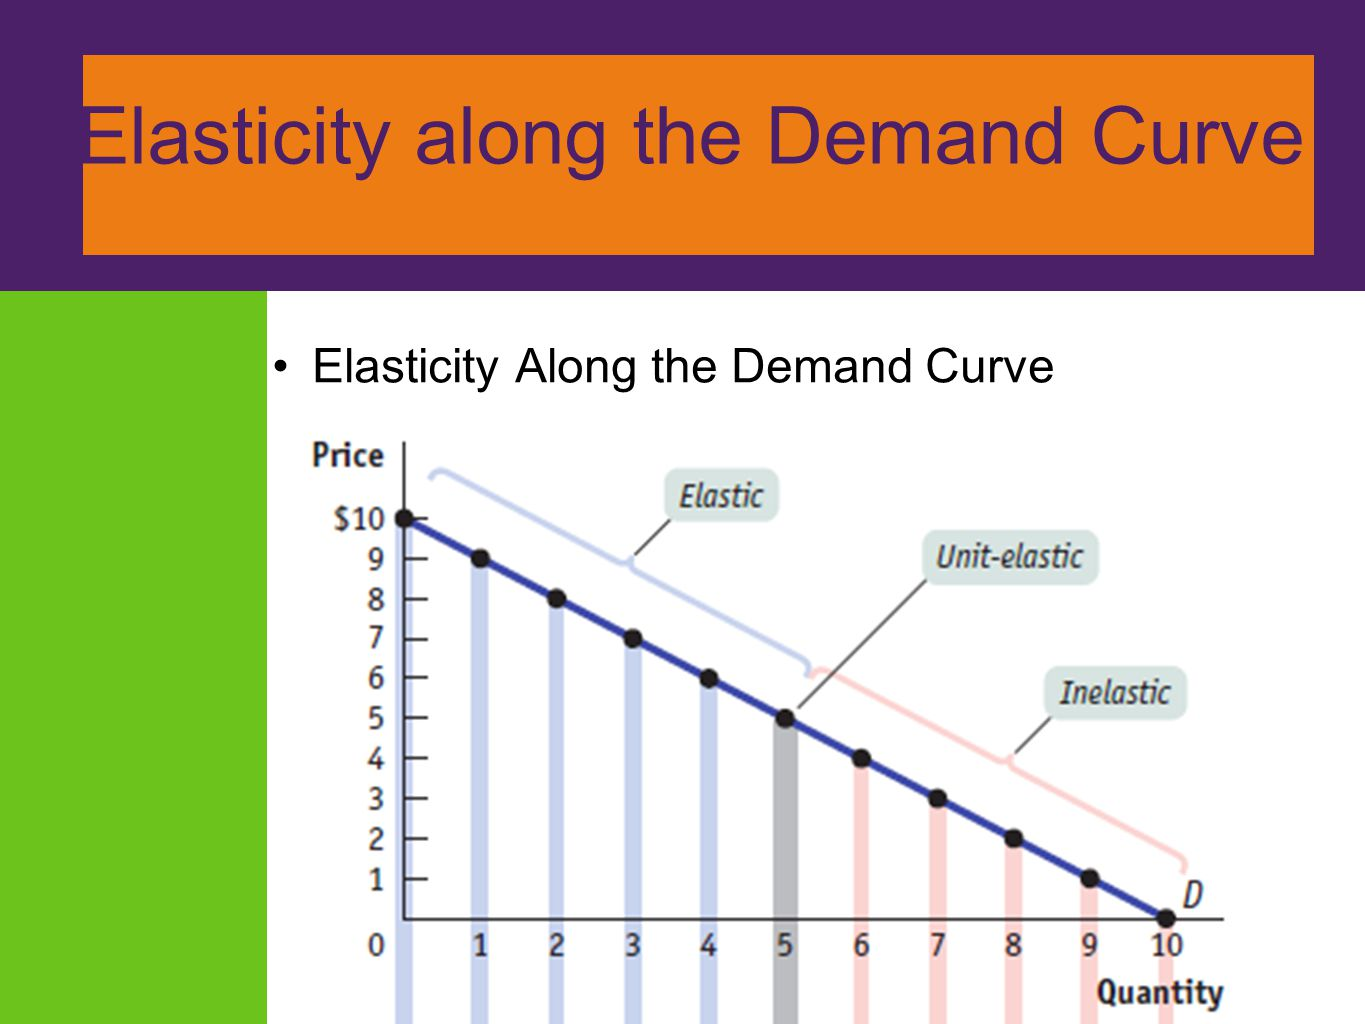 ElElasticity along the Demand Curve